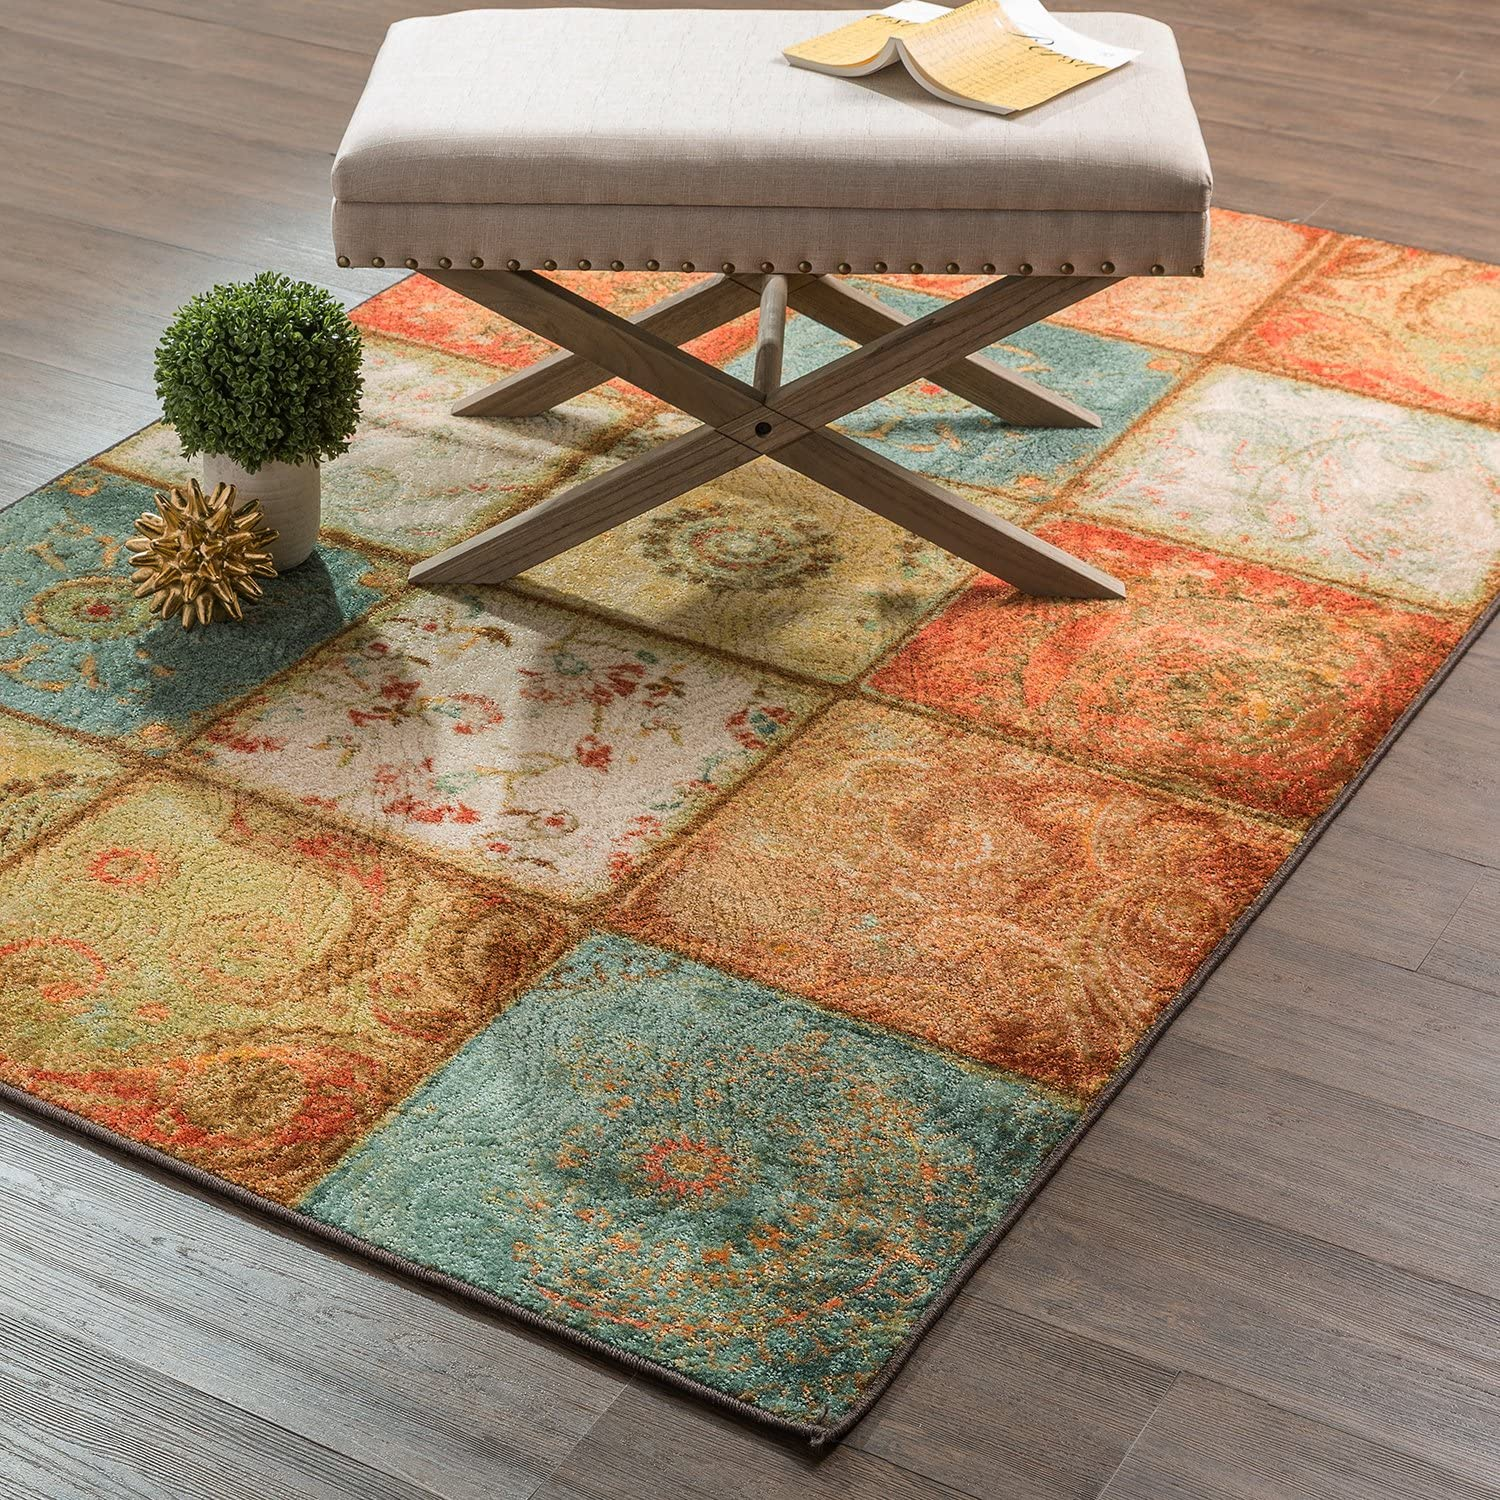 Mohawk Home Free Flow Artifact Panel Multicolor Patchwork Printed Area Rug, 7'6x10', Multicolor